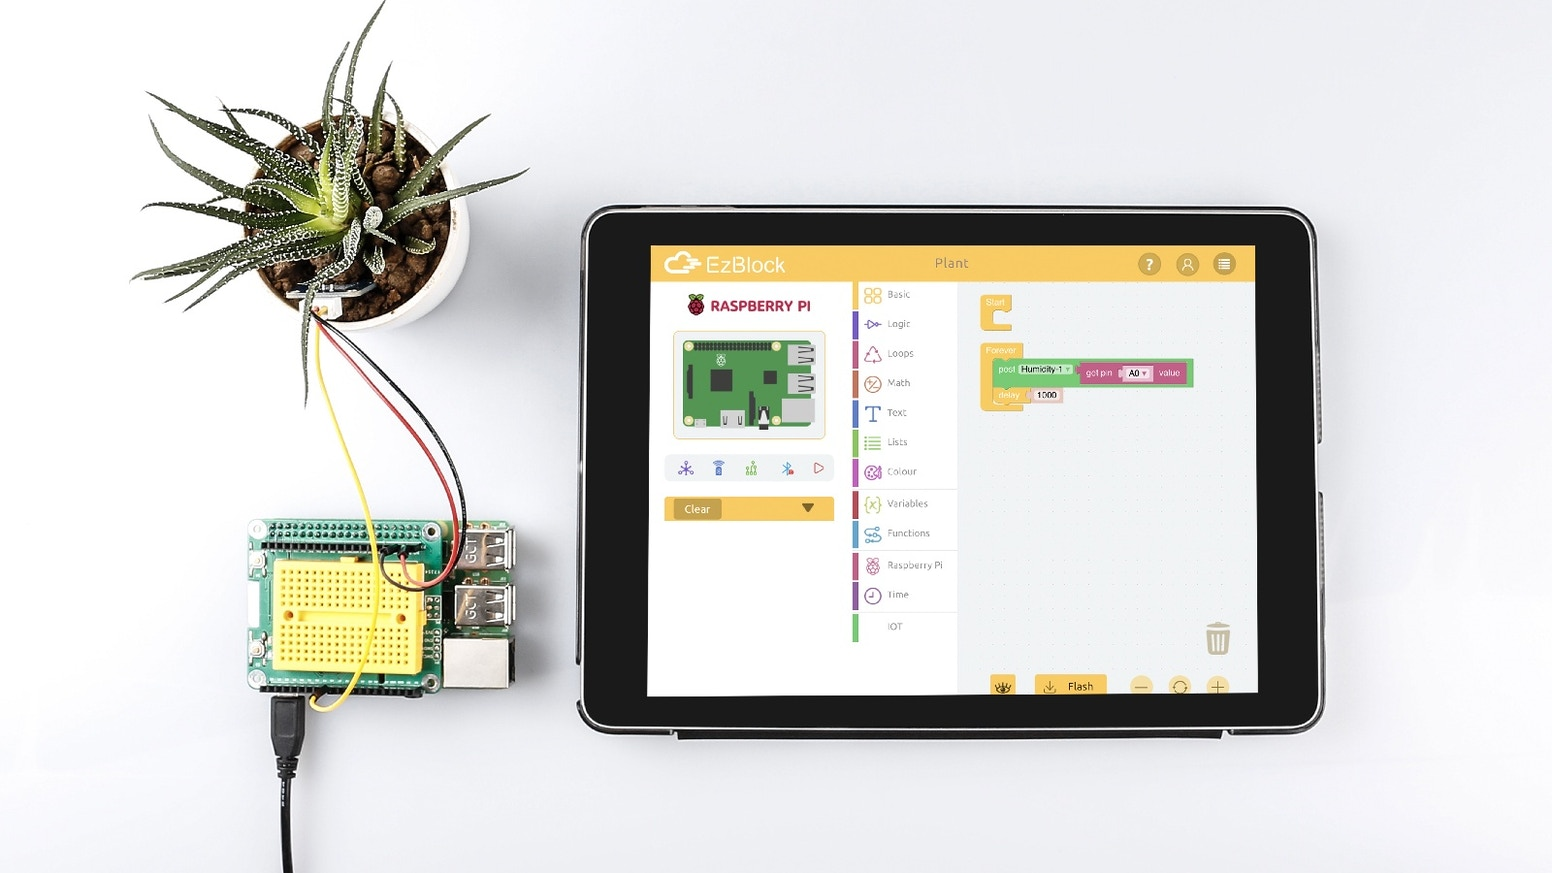 A portable extension board allowing you to program conveniently anywhere, anytime.